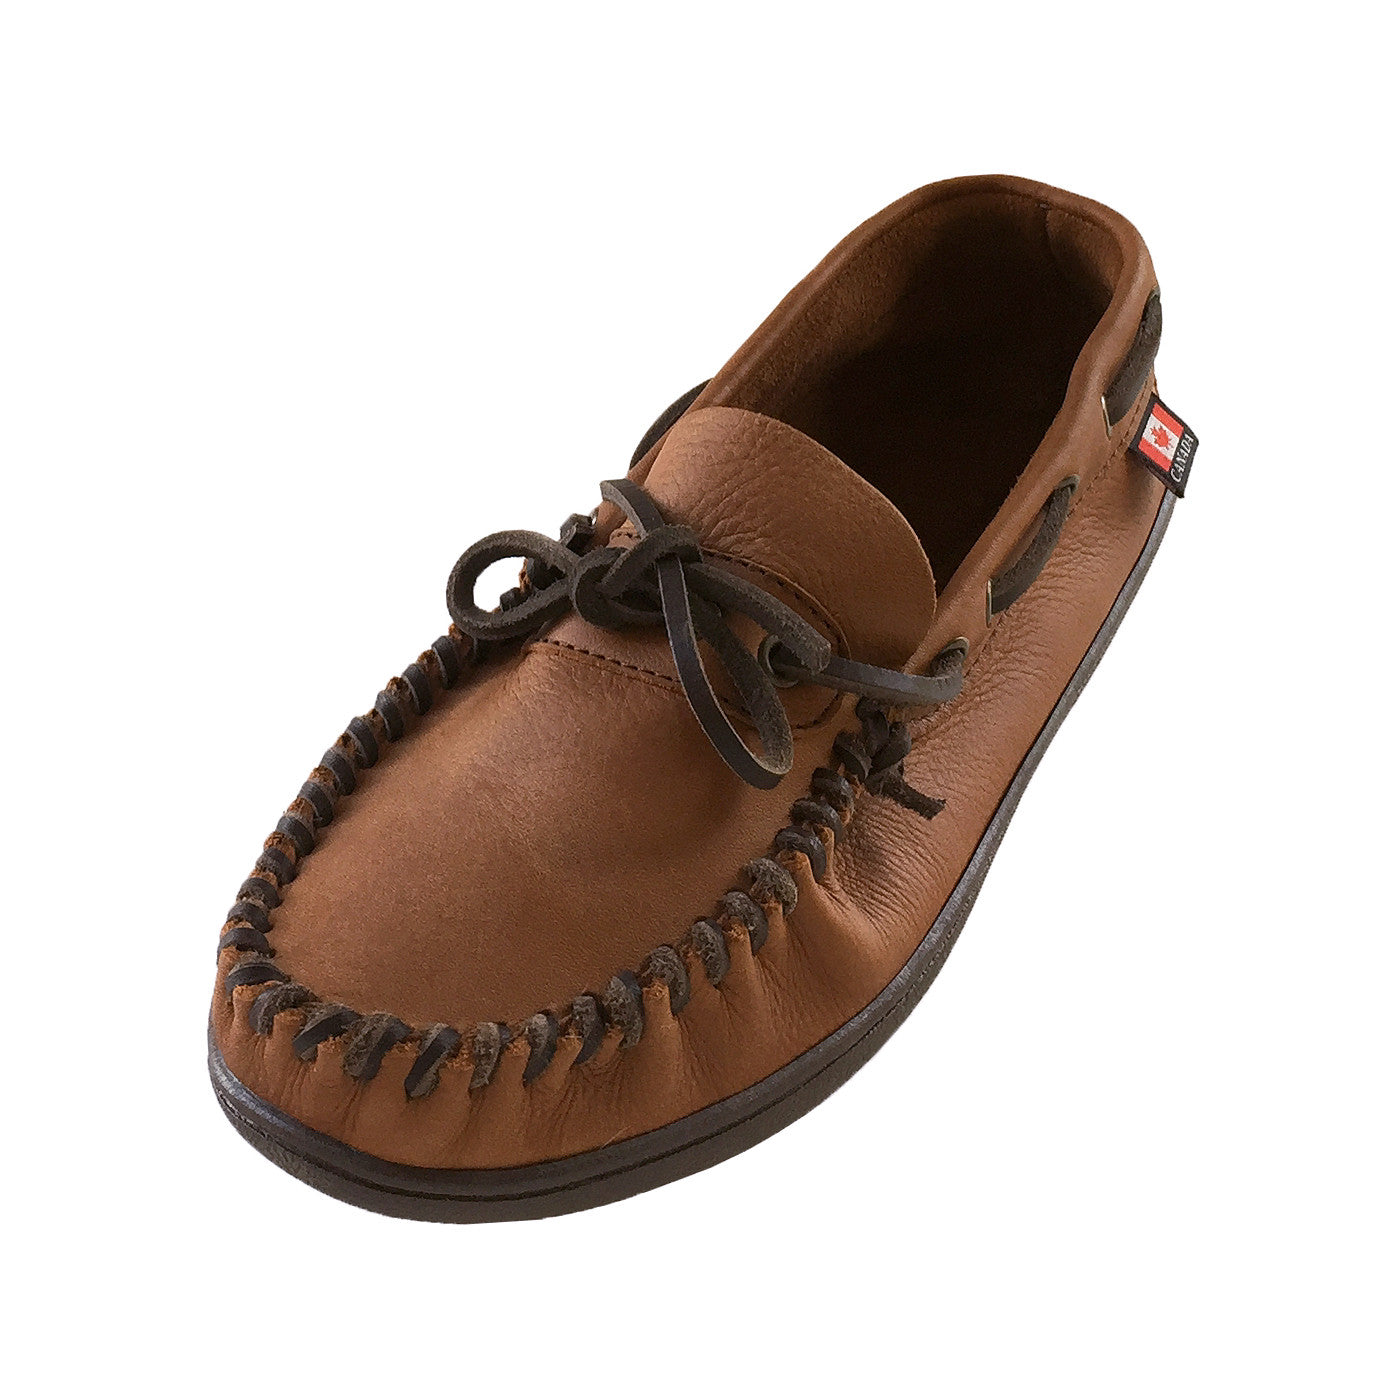 08865adab0b Men s Extra Wide Width Fit Rubber Sole Genuine Leather Moccasin ...